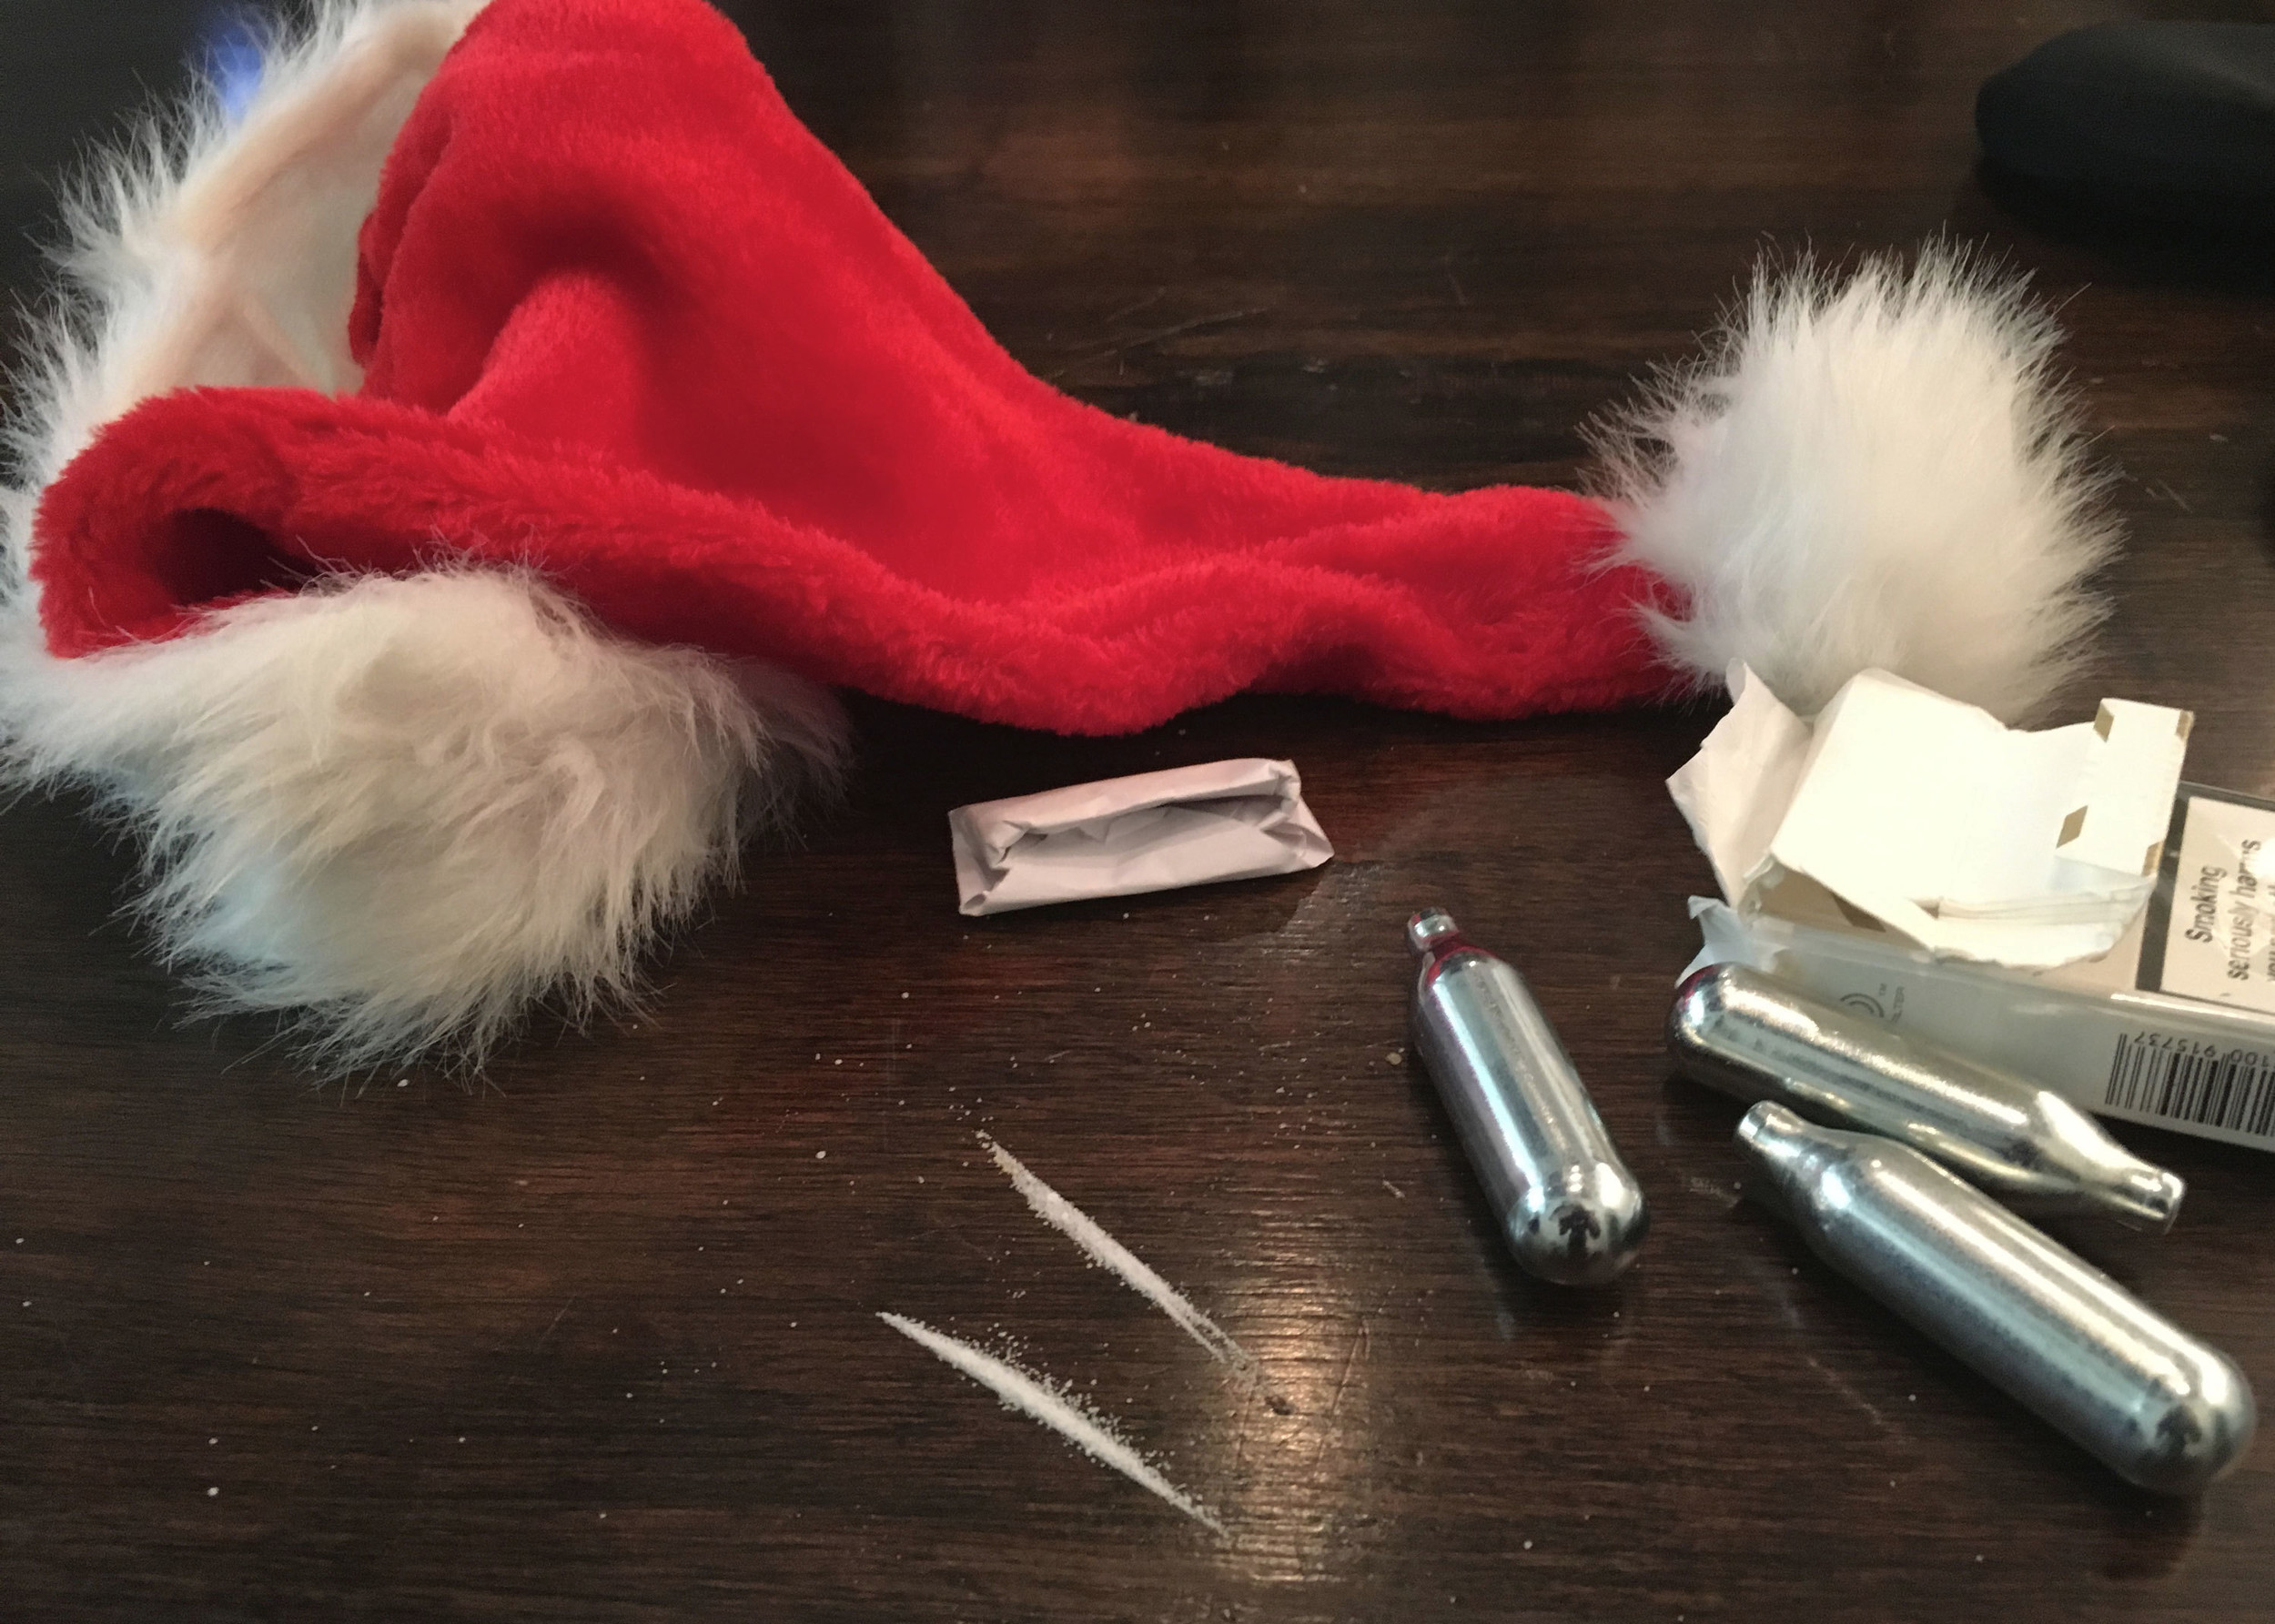 What It's Like Being a Problematic Drug User at Christmas - VICE